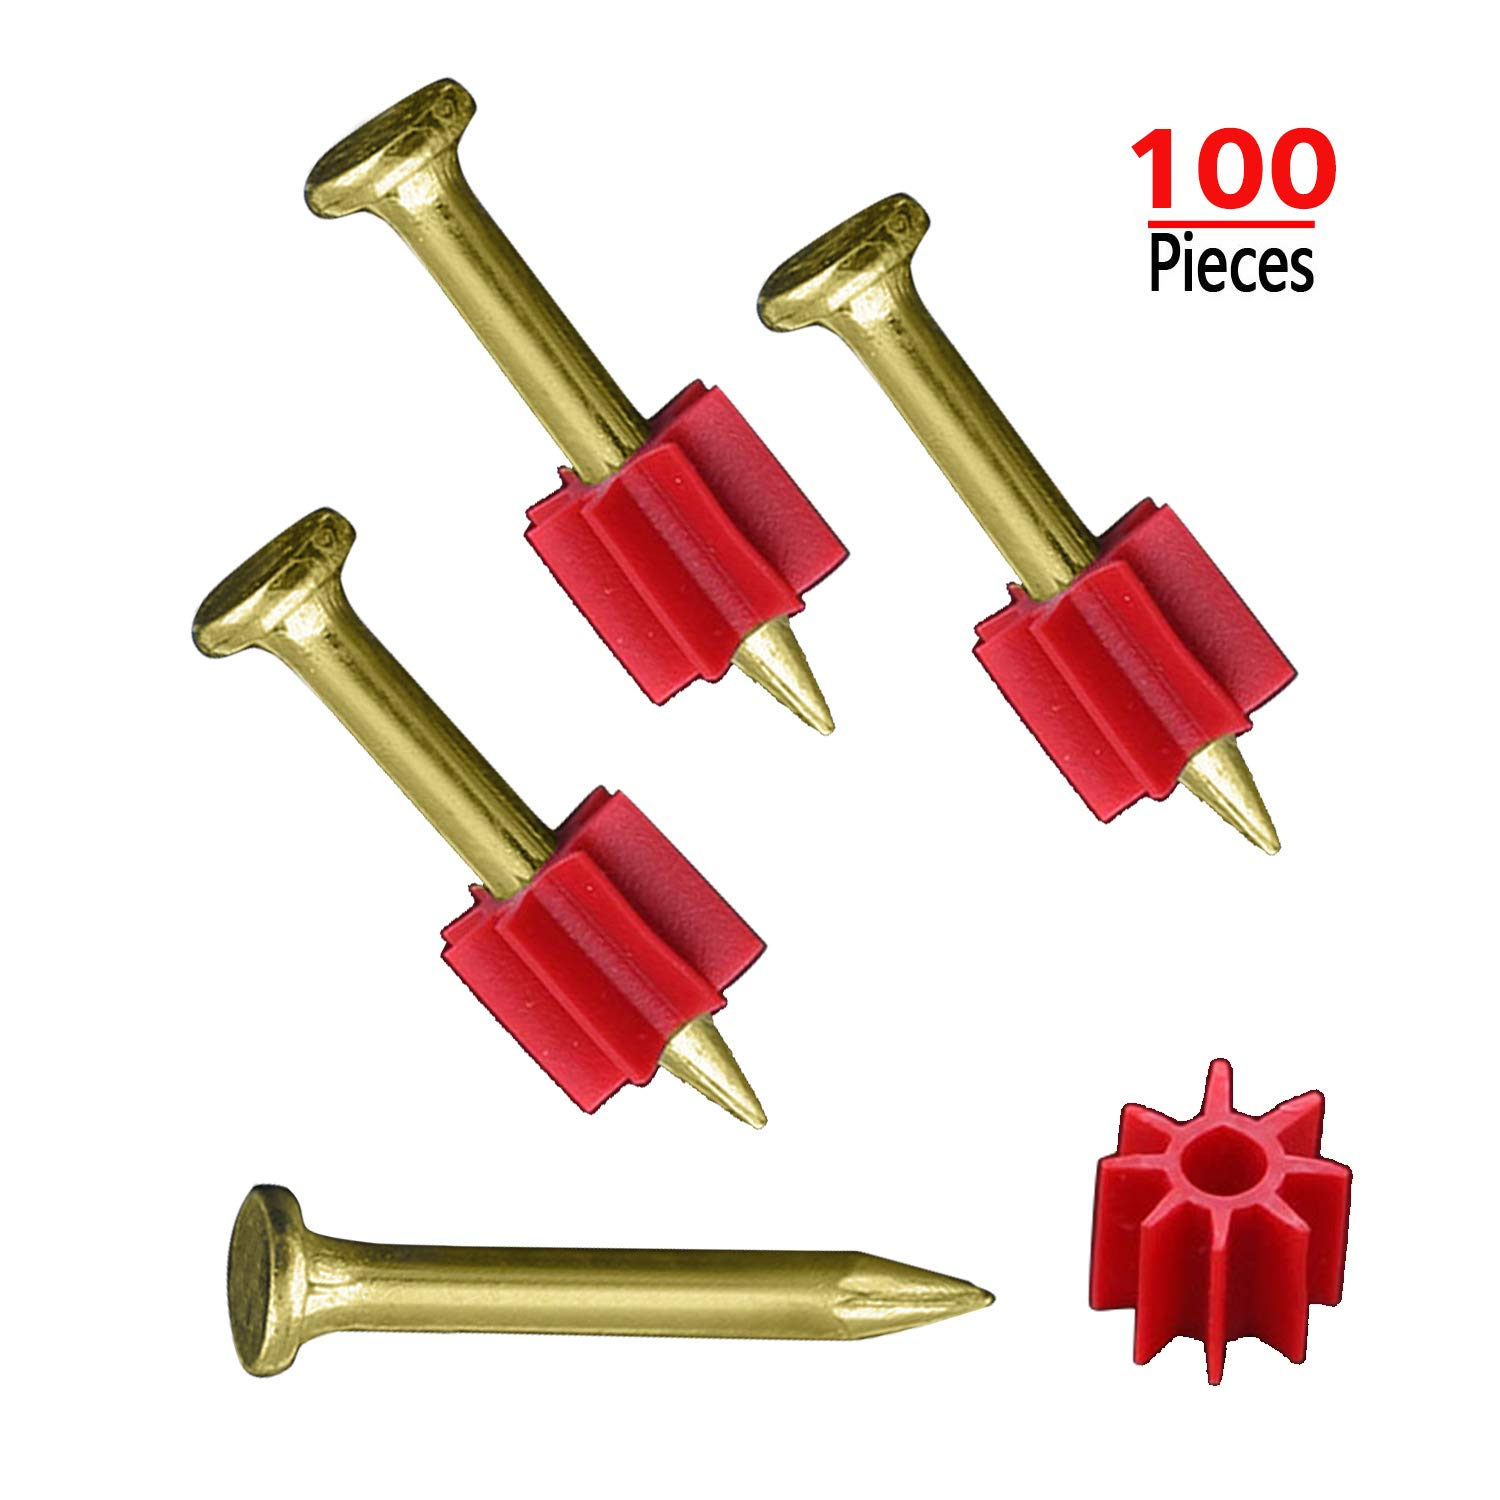 Wall Anchors Kit Self Drilling Drywall Plastic Anchors with Screws Kit 60 Pieces All